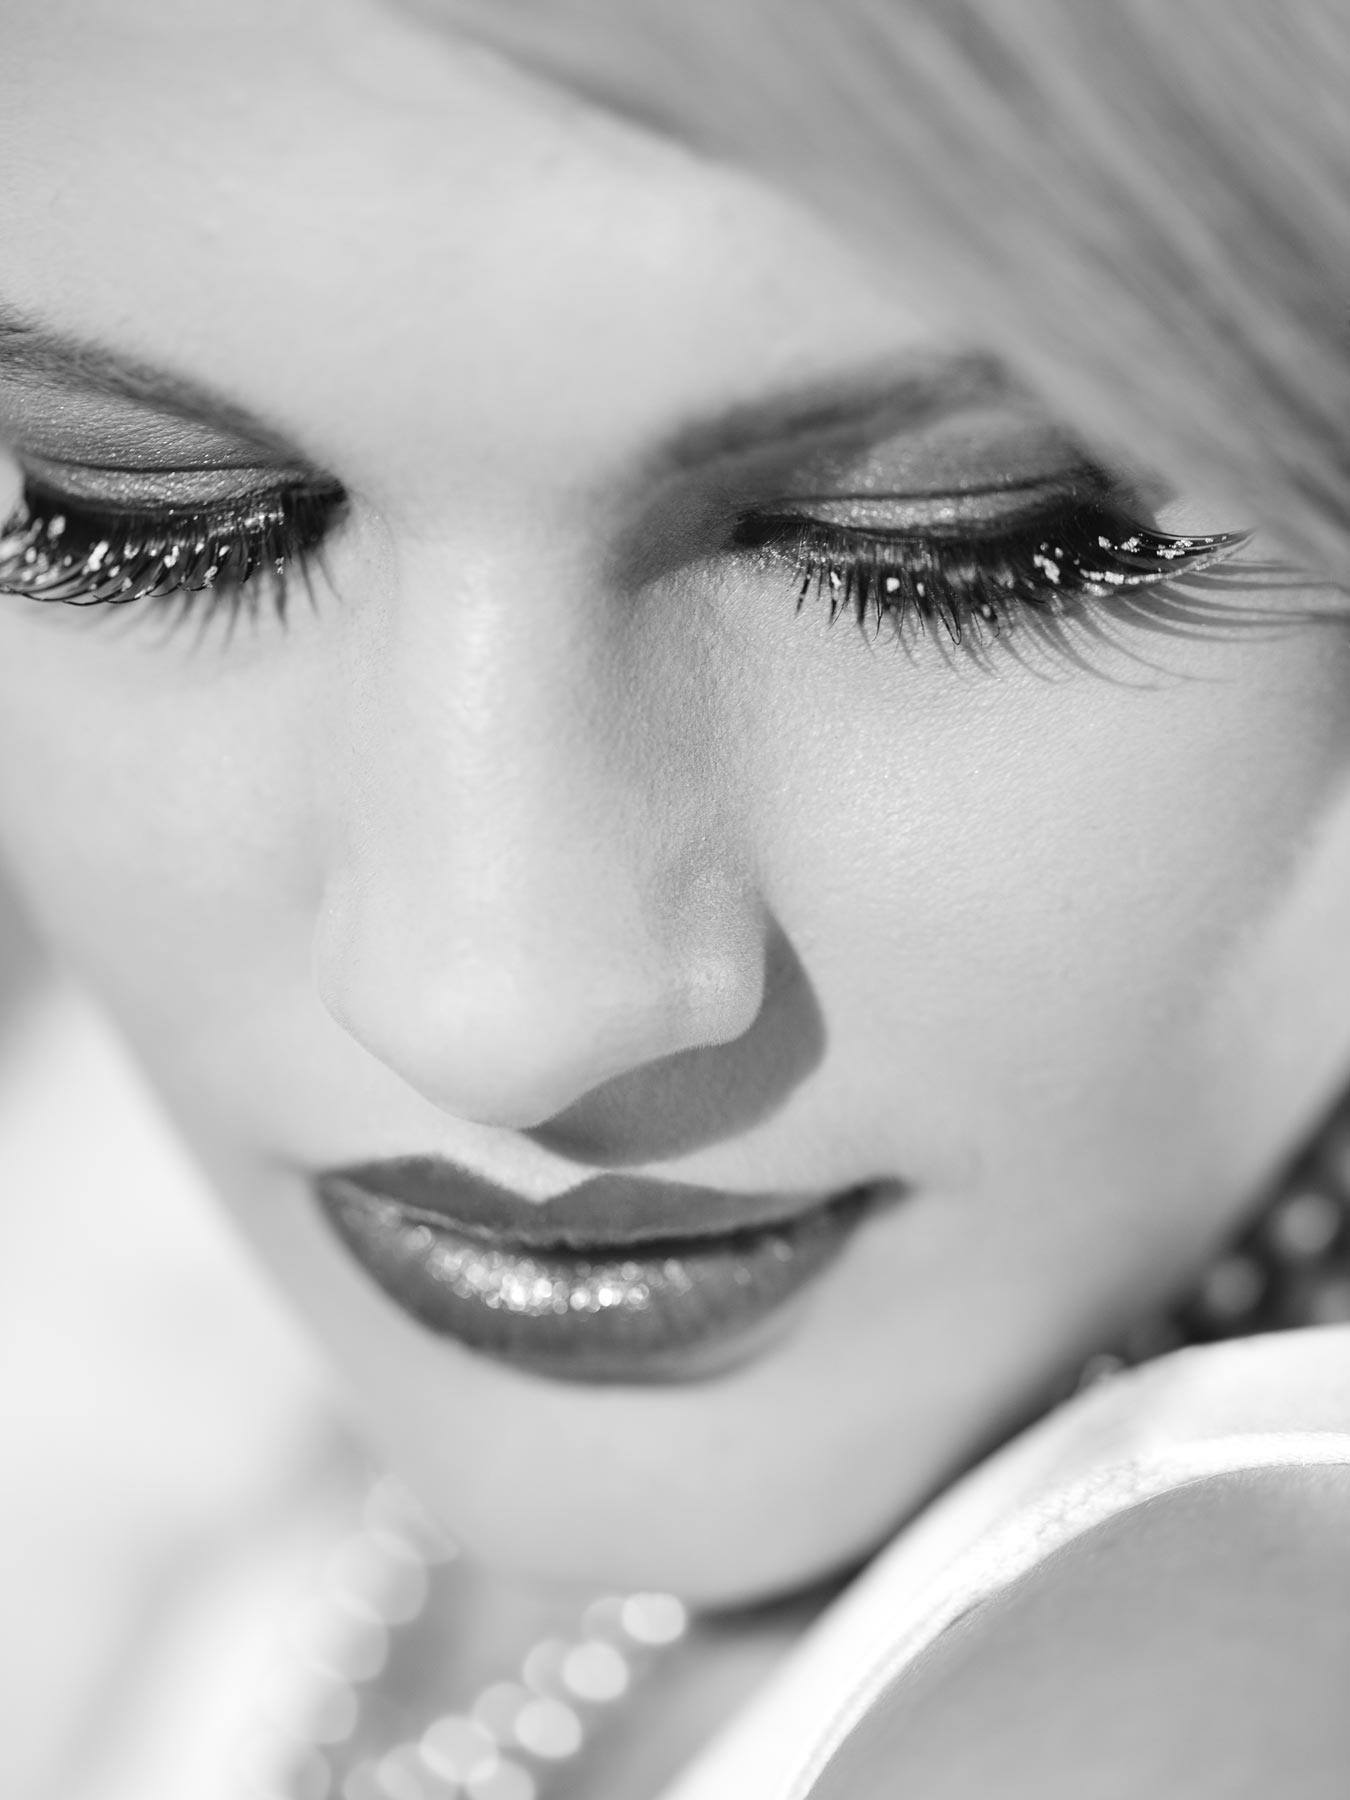 Chloe-Jasmine Whichello close up showing vintage styling. Monochrome